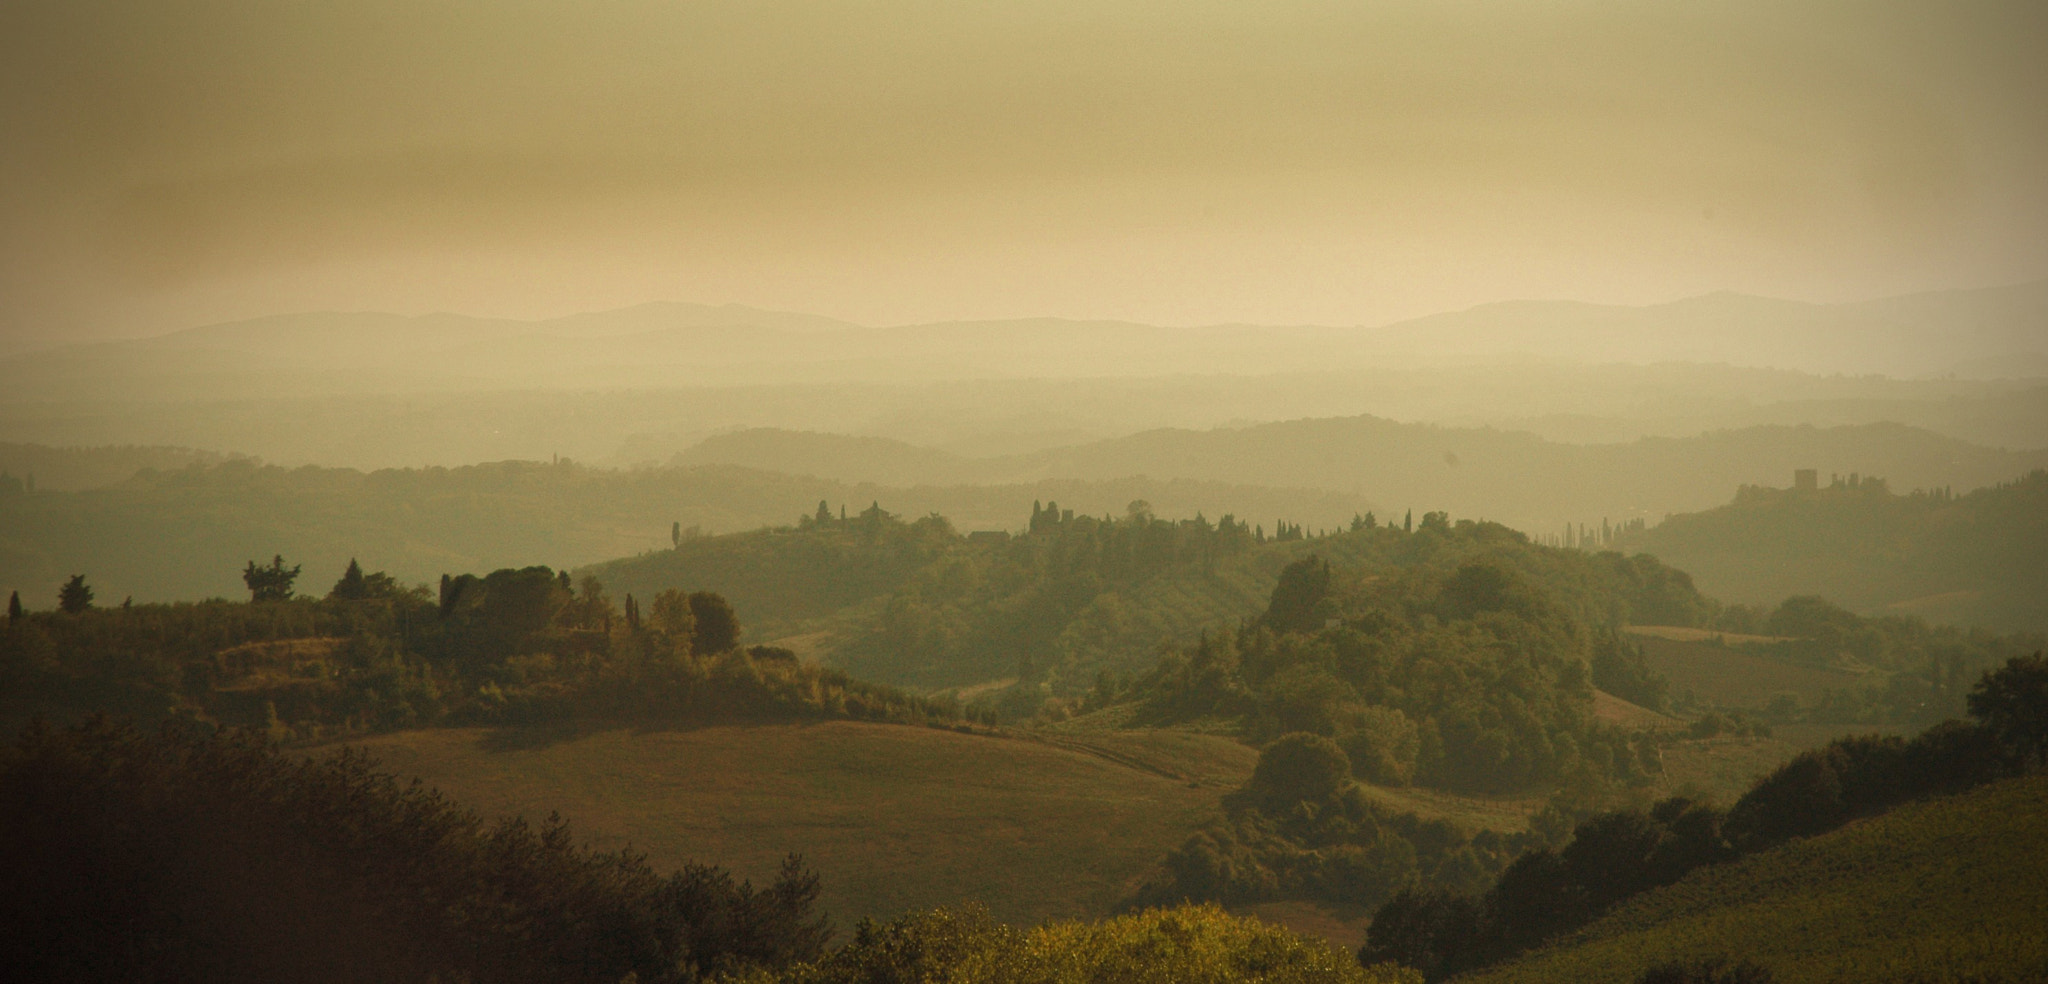 Photograph tuscany by Maurits de Groen on 500px